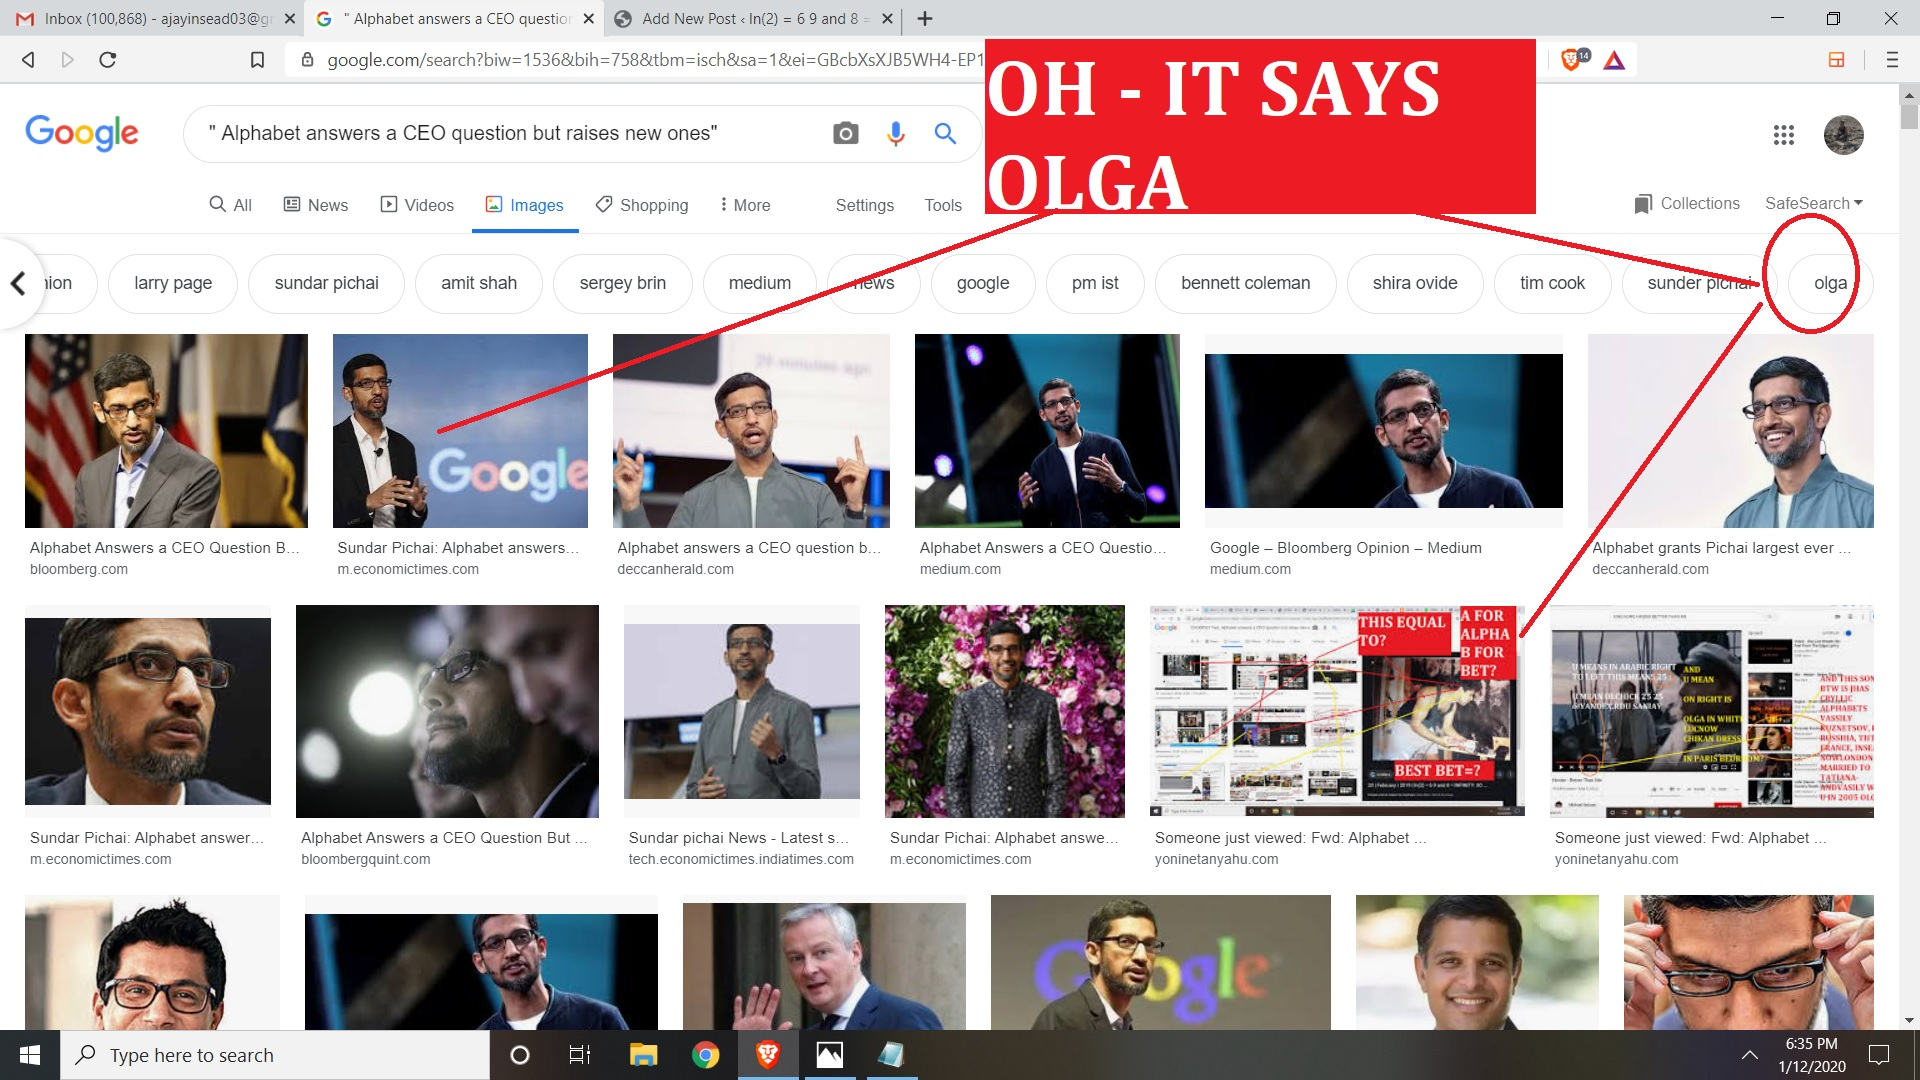 OH WOW - IT SAYS OLGA, HOTMAN IS THSIE BECAUSE KIKA IS HAD OF INTERENTS - NOR ANYONE ELSEE - TELL ME ALL I ASKE DREGARDS AJAY MISHRA